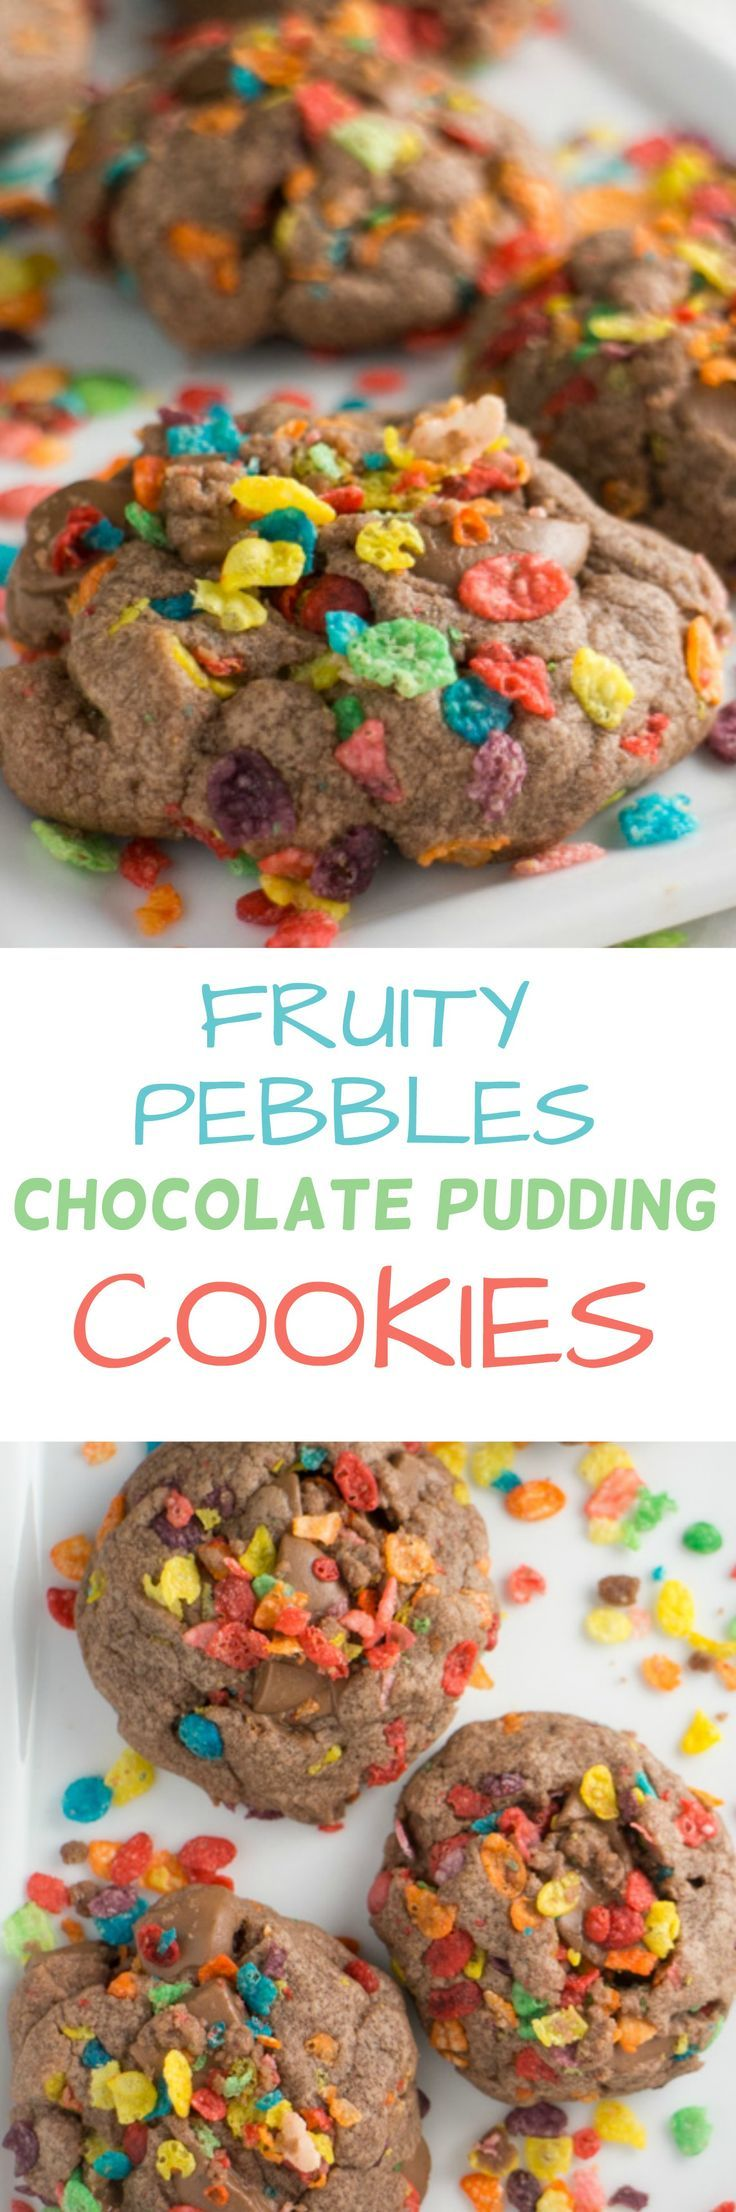 Fruity Pebbles Chocolate Pudding Cookies Recipe. These cookies will melt in your mouth with ooey gooey chocolate bites and delicious Fruity Pebble cereal.